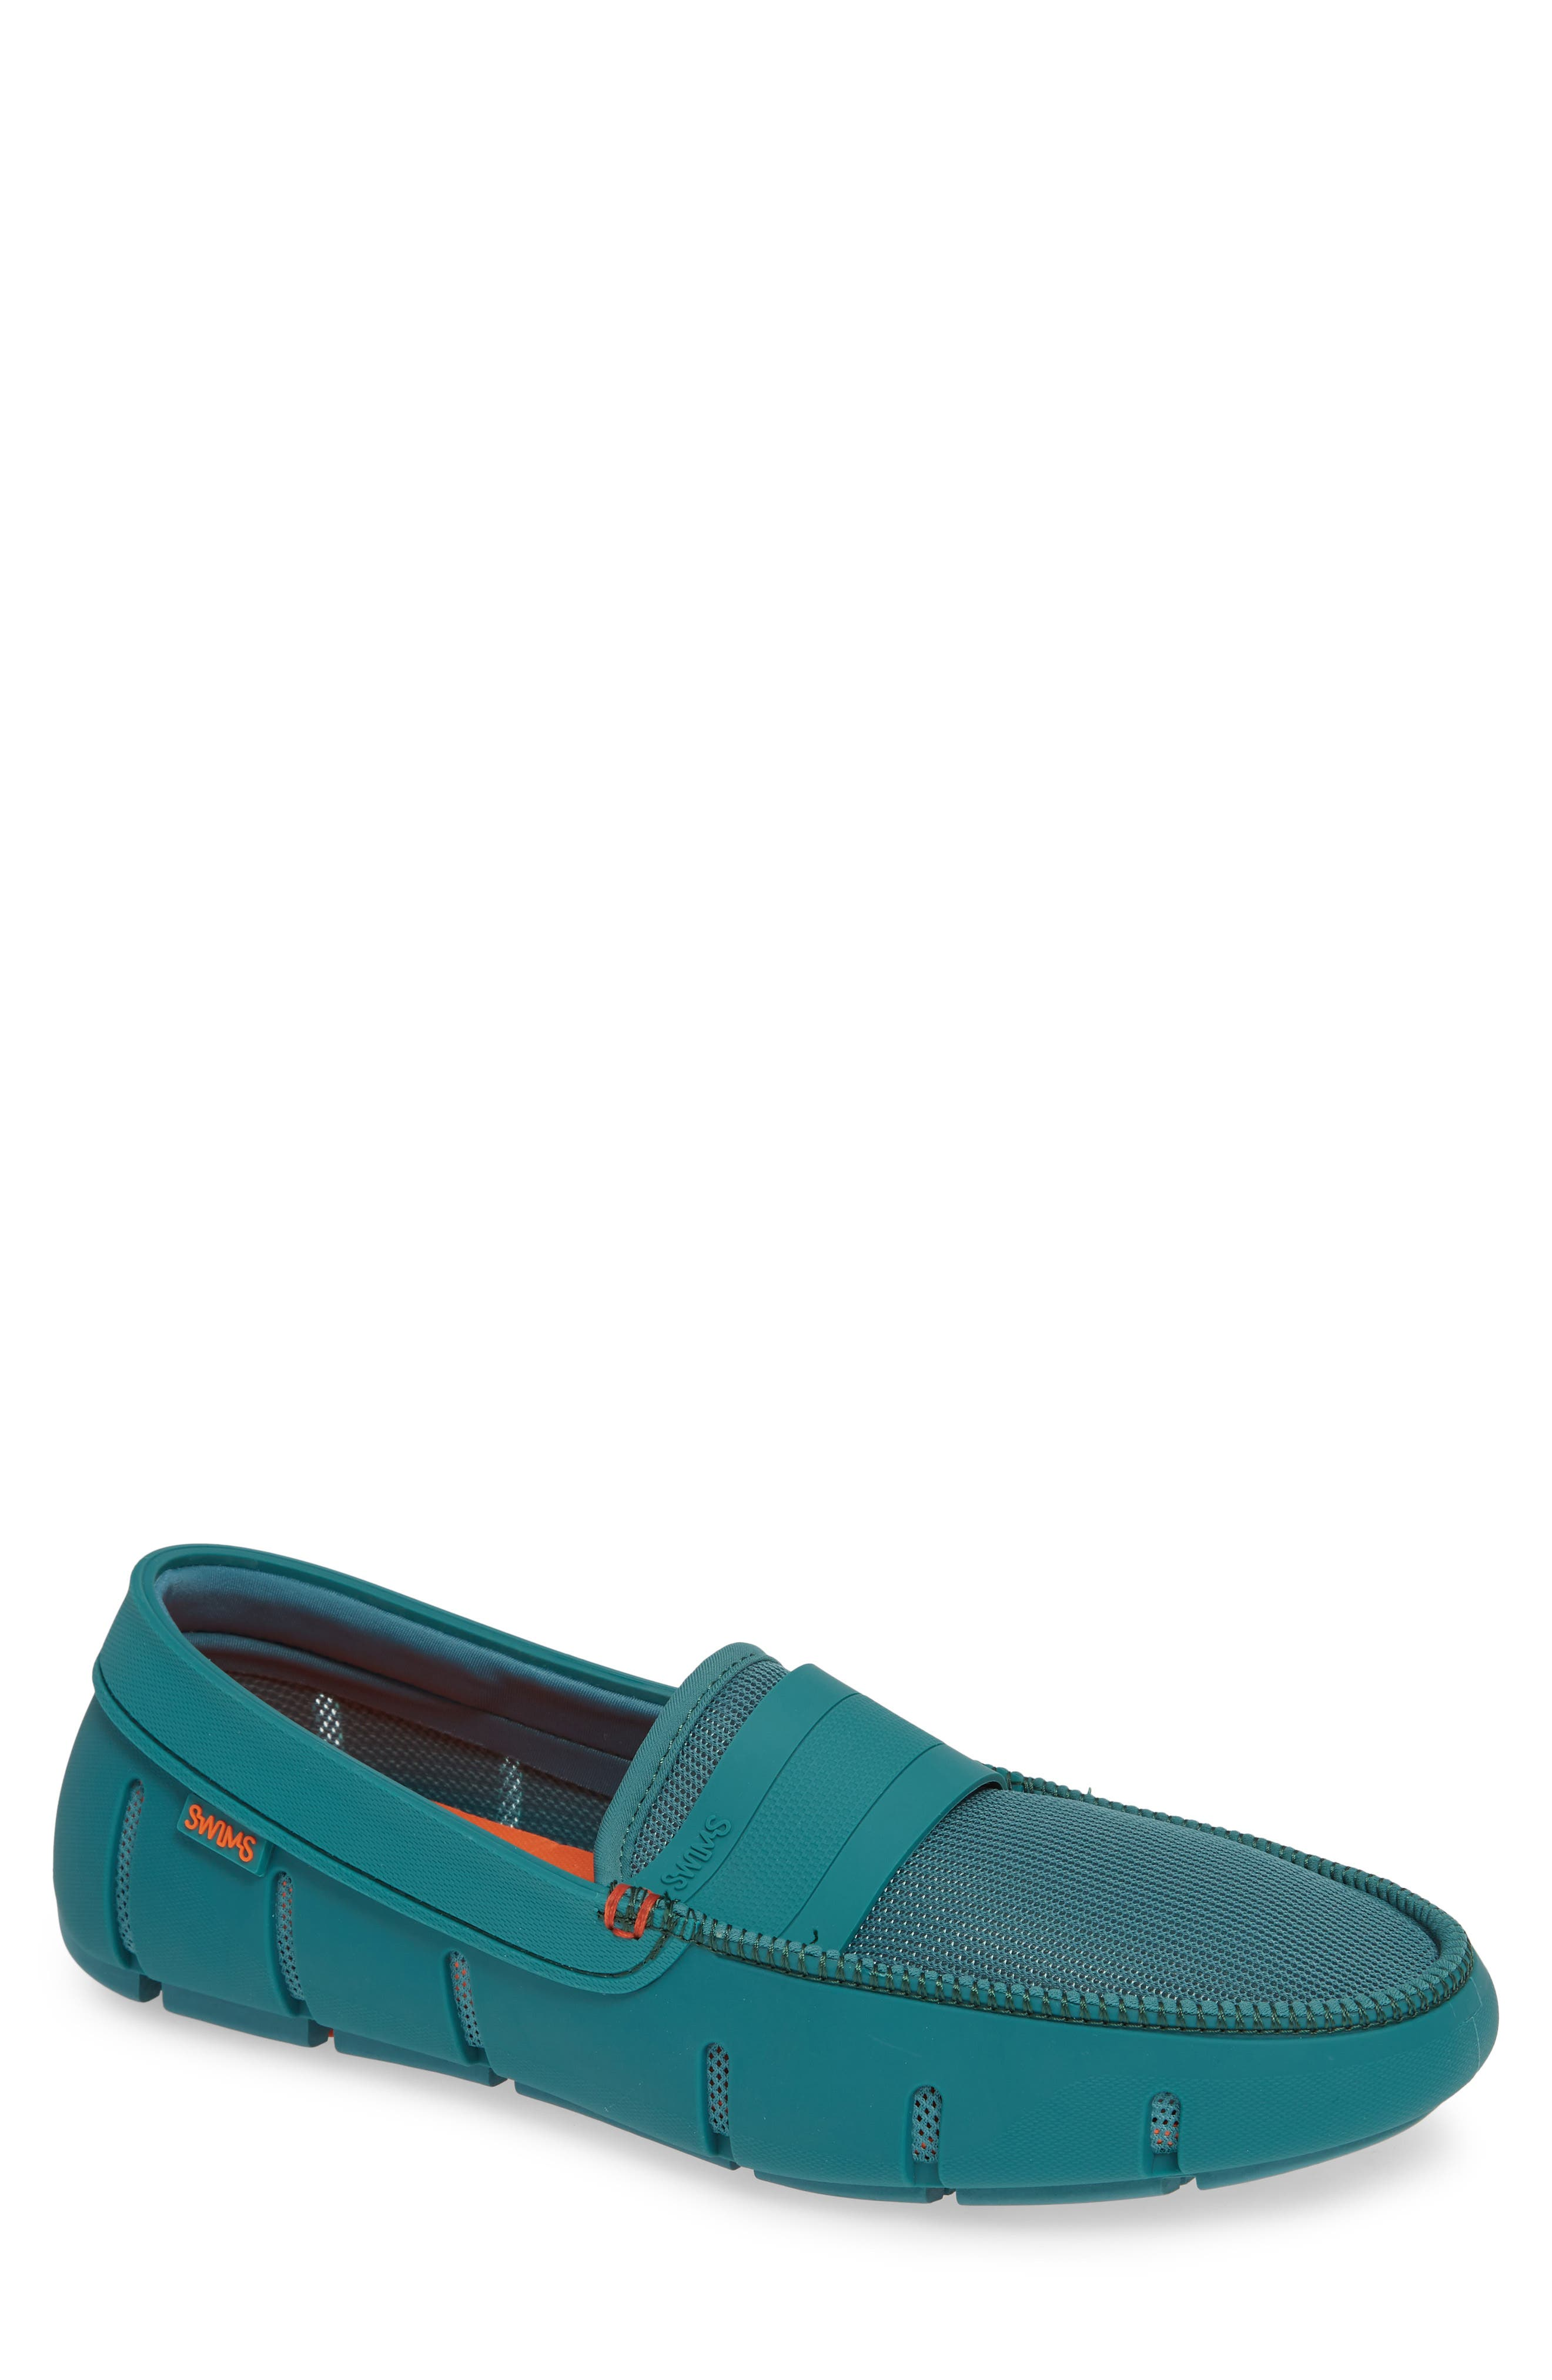 Stride Driving Loafer,                             Main thumbnail 1, color,                             TEAL GREEN